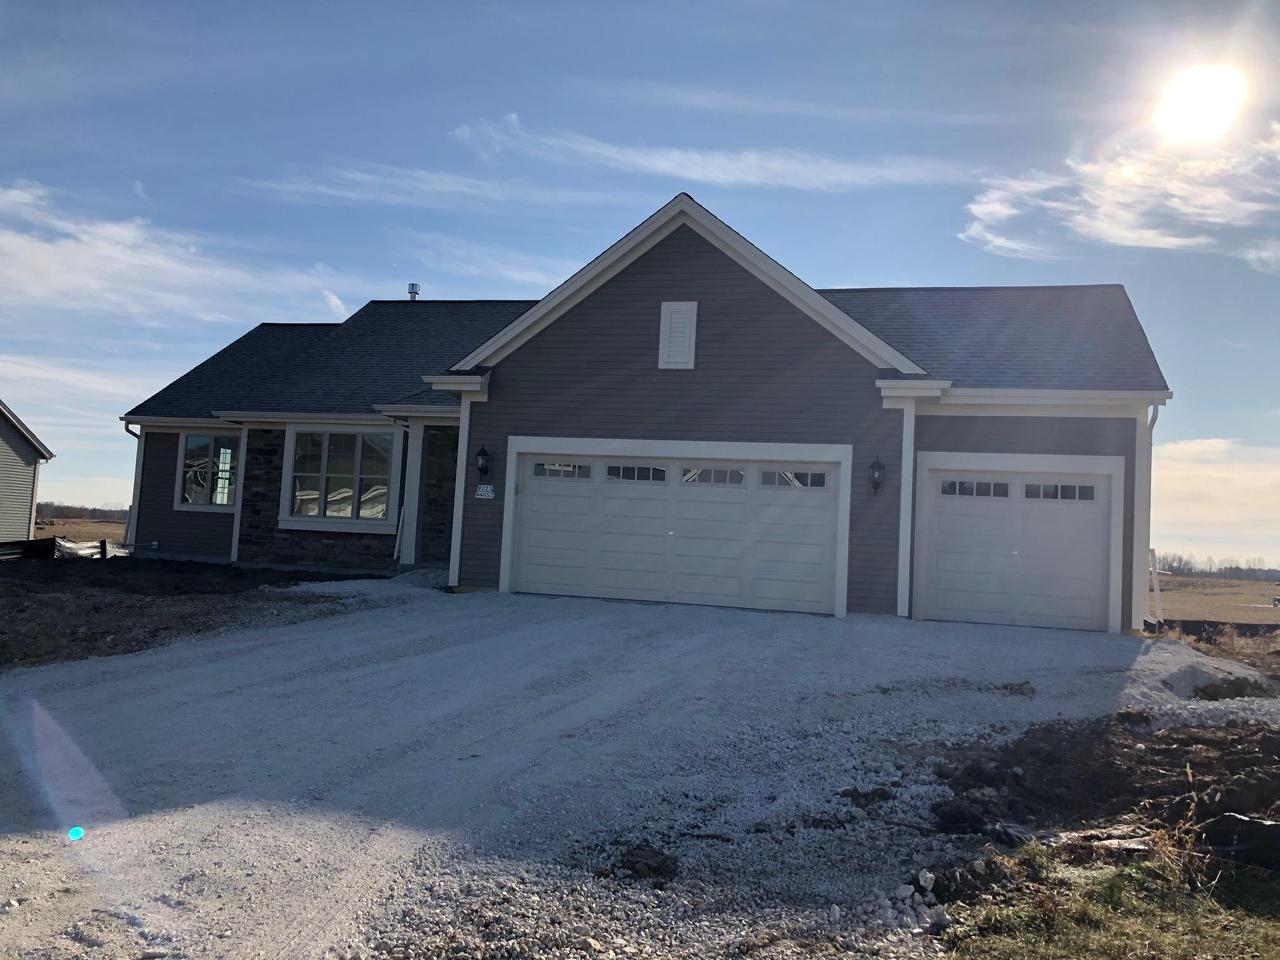 Welcome home to this brand new exciting plan the Rylee 1811 sqft ranch. Huge great room with 10' cofferred ceiling Split bedrooms, huge laundy/mud room and 2 full baths!  Upgrades galore! Egress window in the basement offers more usable future footage.